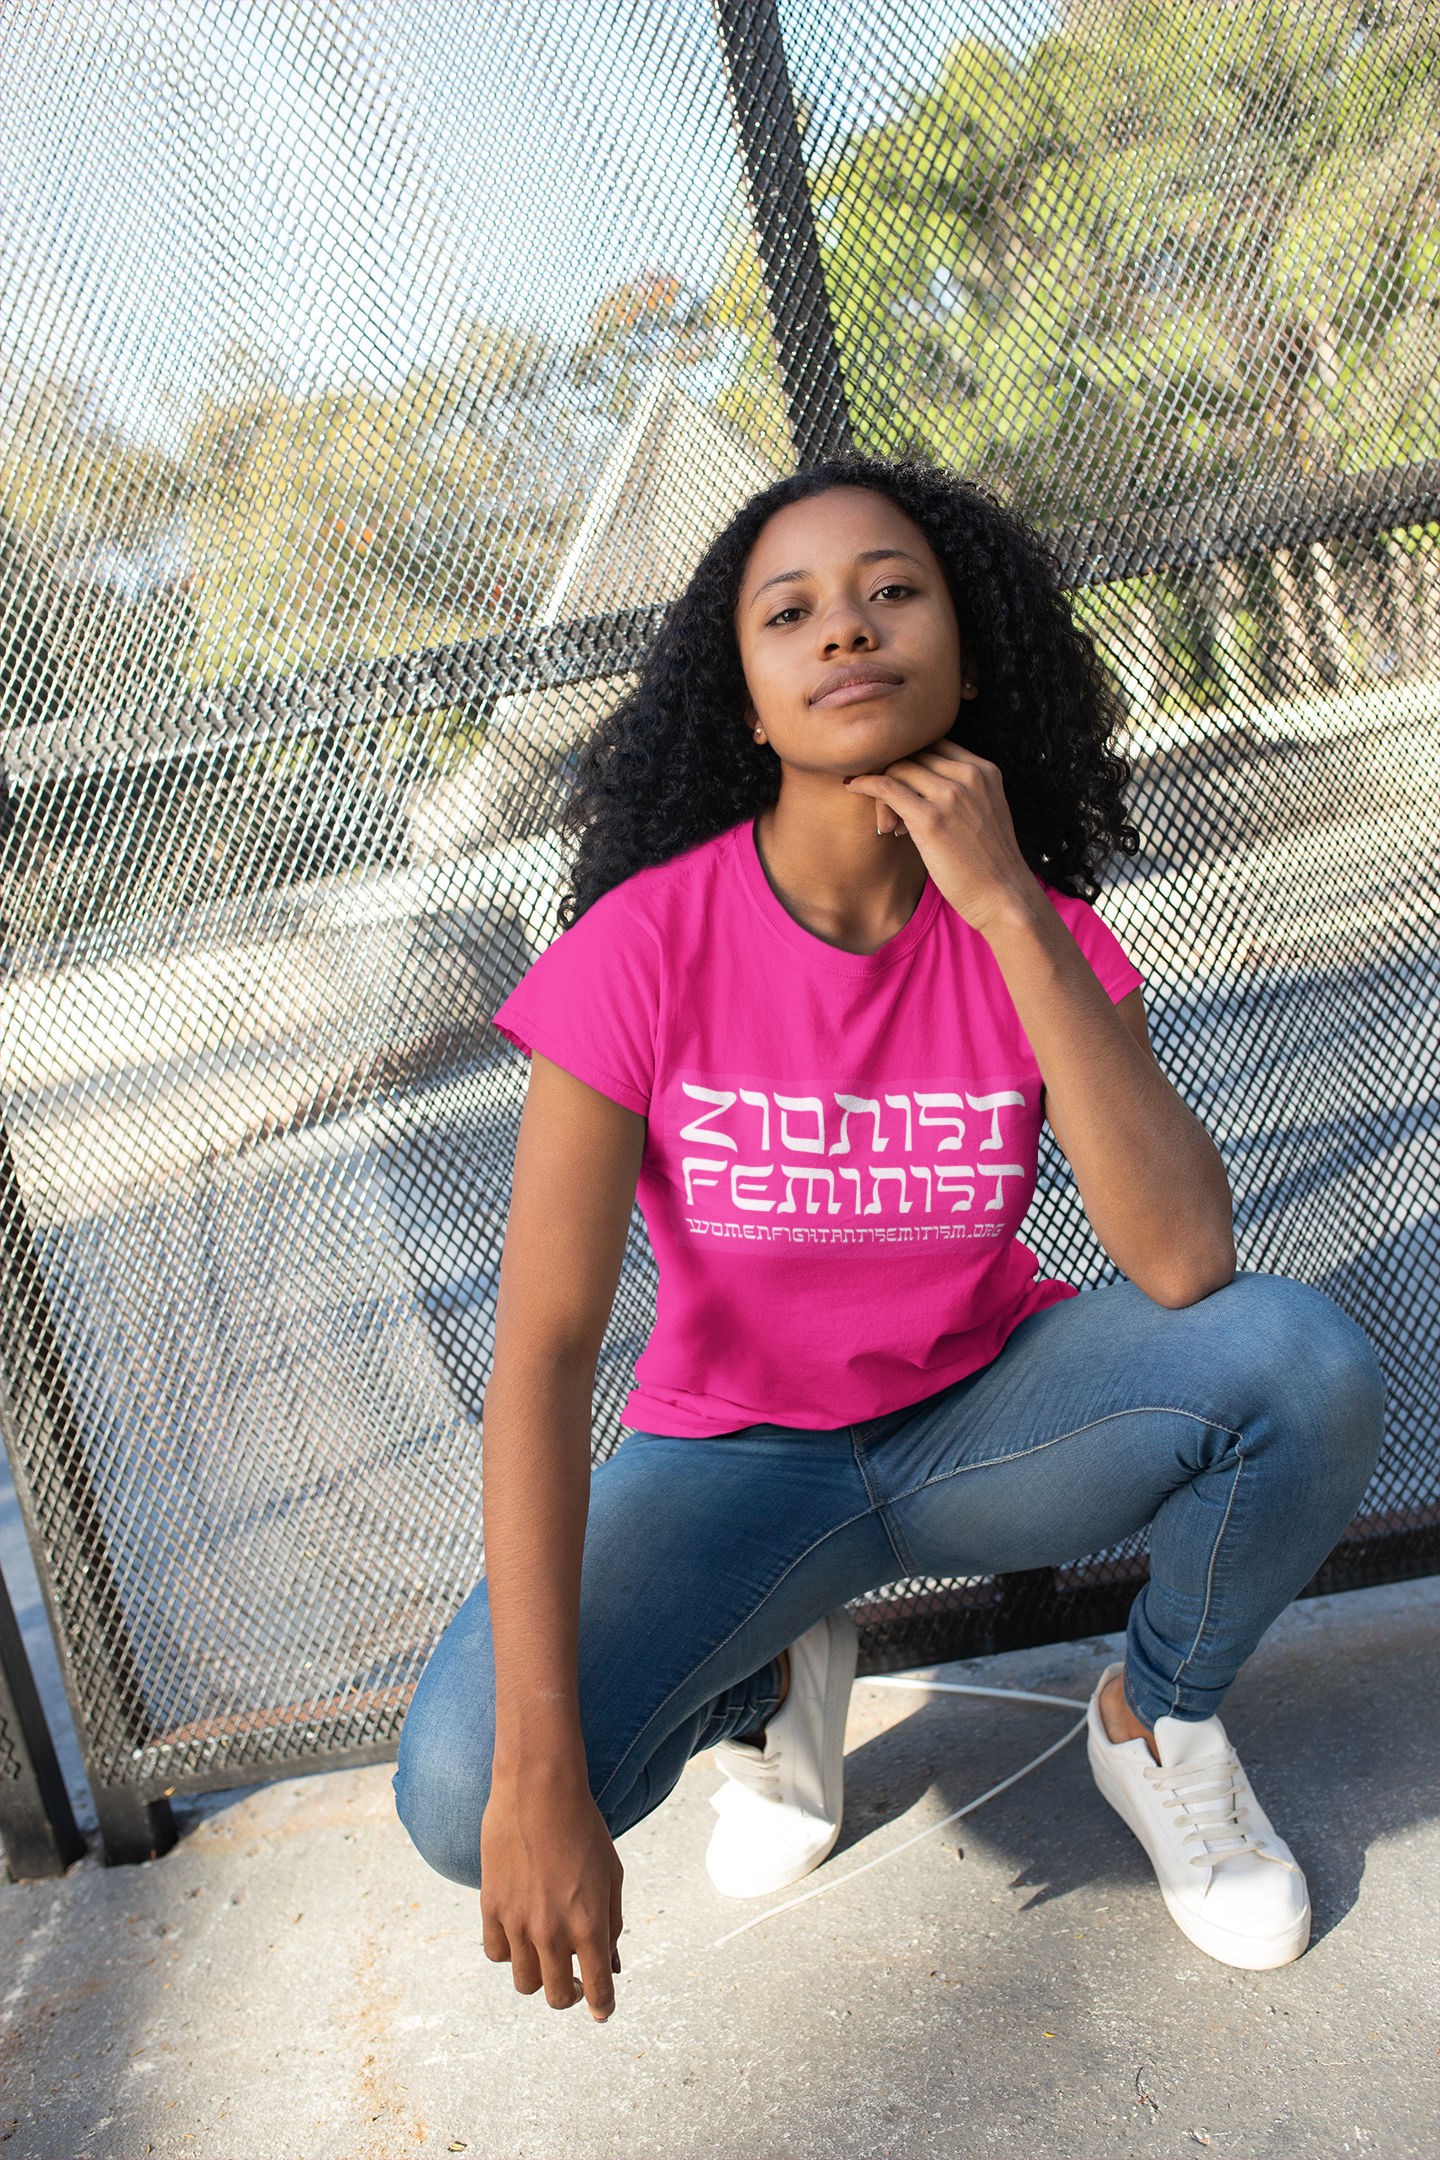 tshirt-mockup-of-a-girl-with-curly-hair-crouching-24095.png